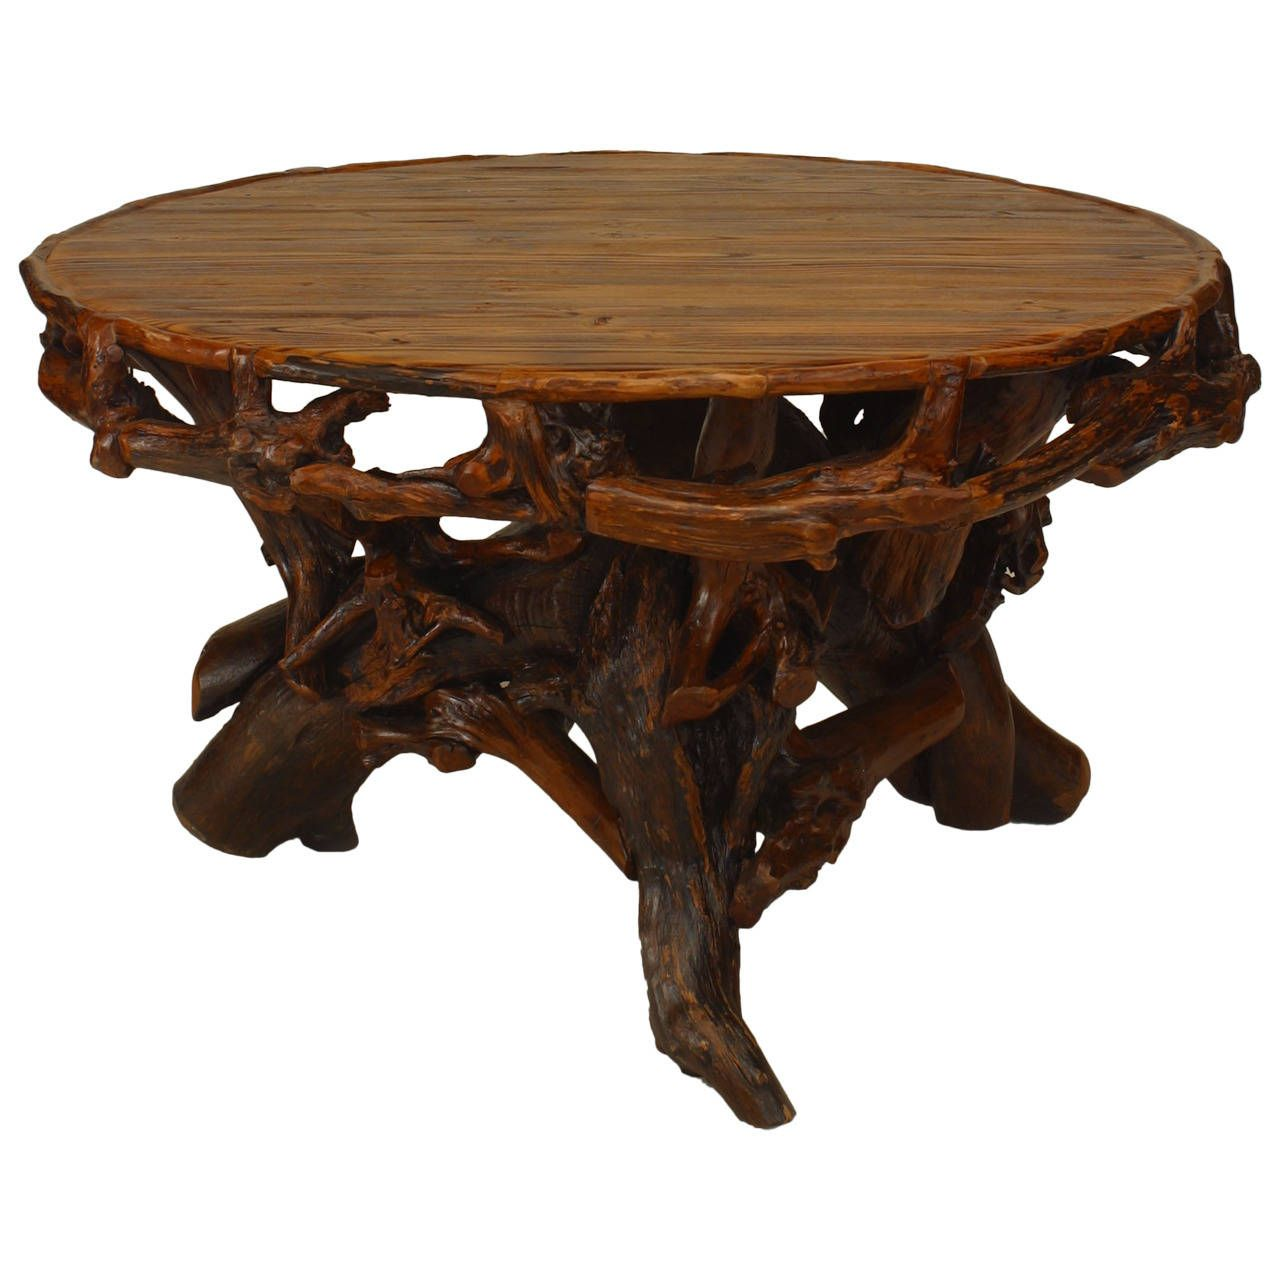 20th C American Adirondack Style Root Base Dining Table Decoracao Em Madeira Rustica Decoracao Com Madeira Moveis Rusticos [ 1280 x 1280 Pixel ]